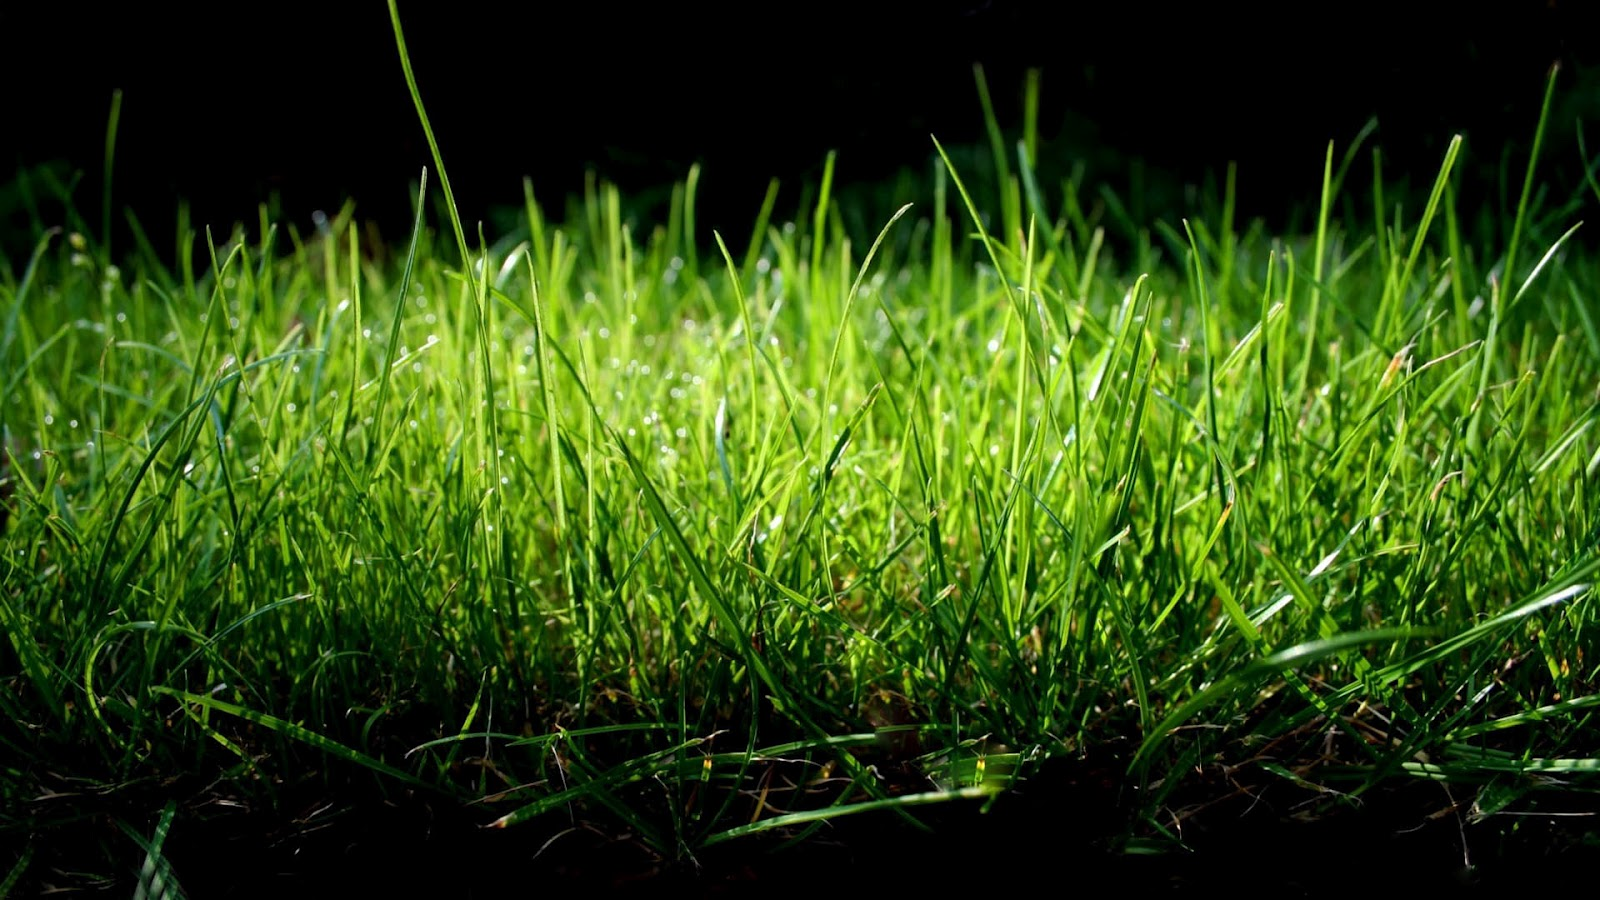 grass wallpaper night dark